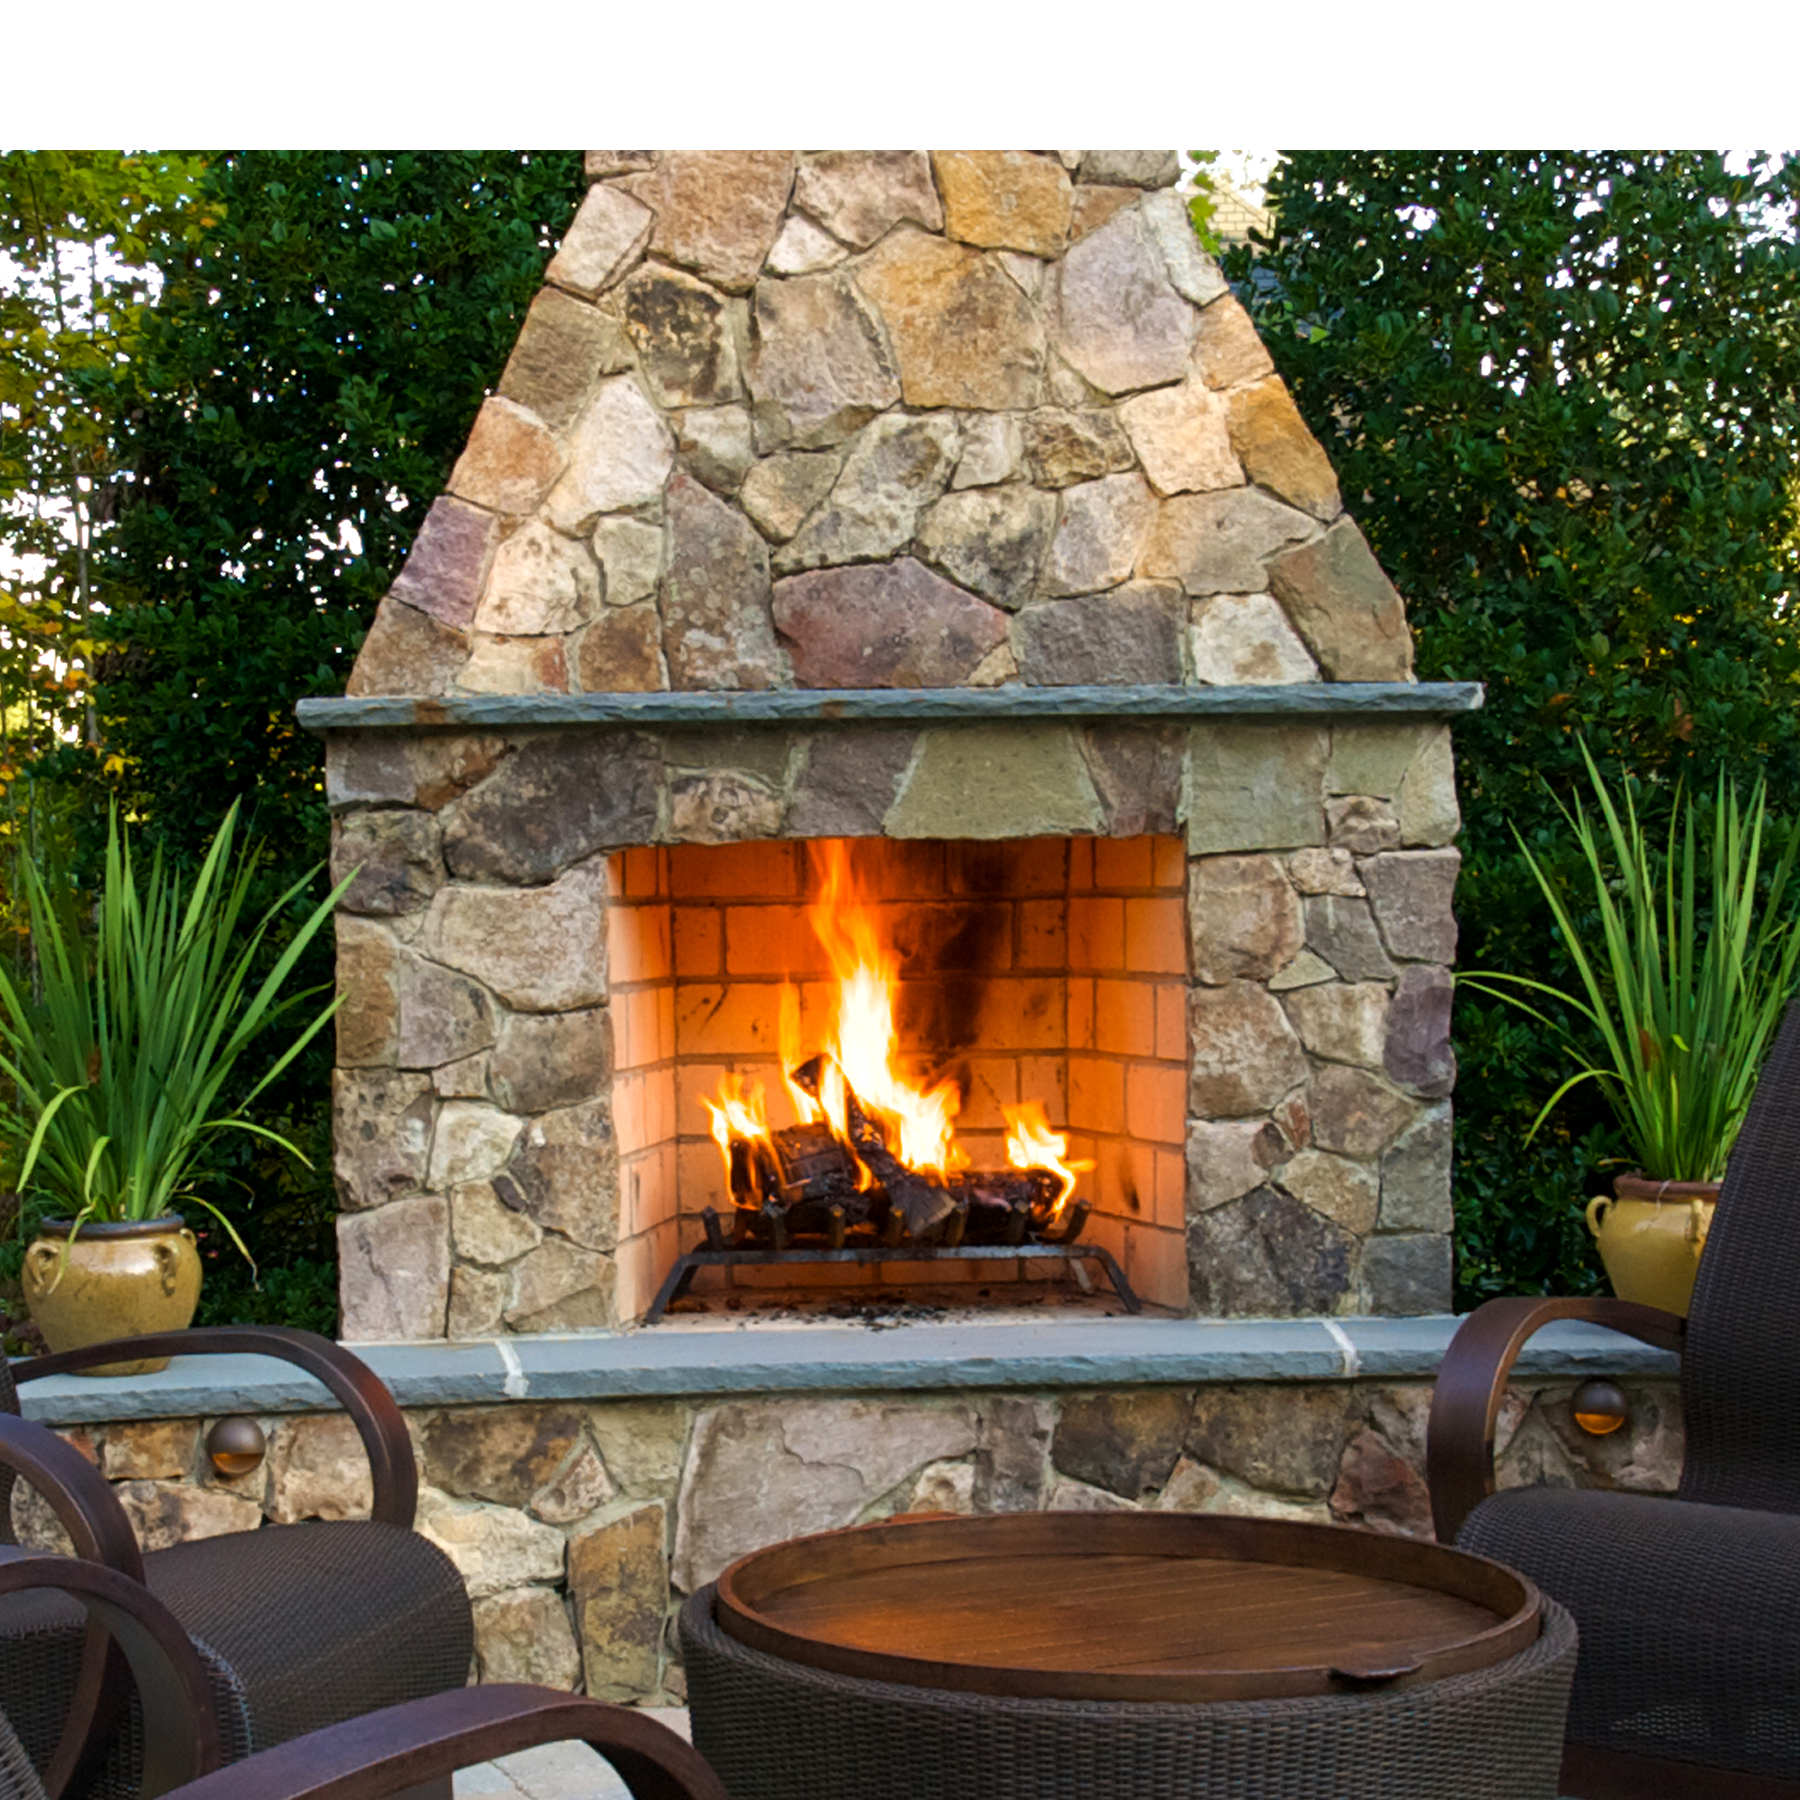 fireplace thumb 33 1494966732 Top Result 50 Awesome Outdoor Gas Fireplace Kits